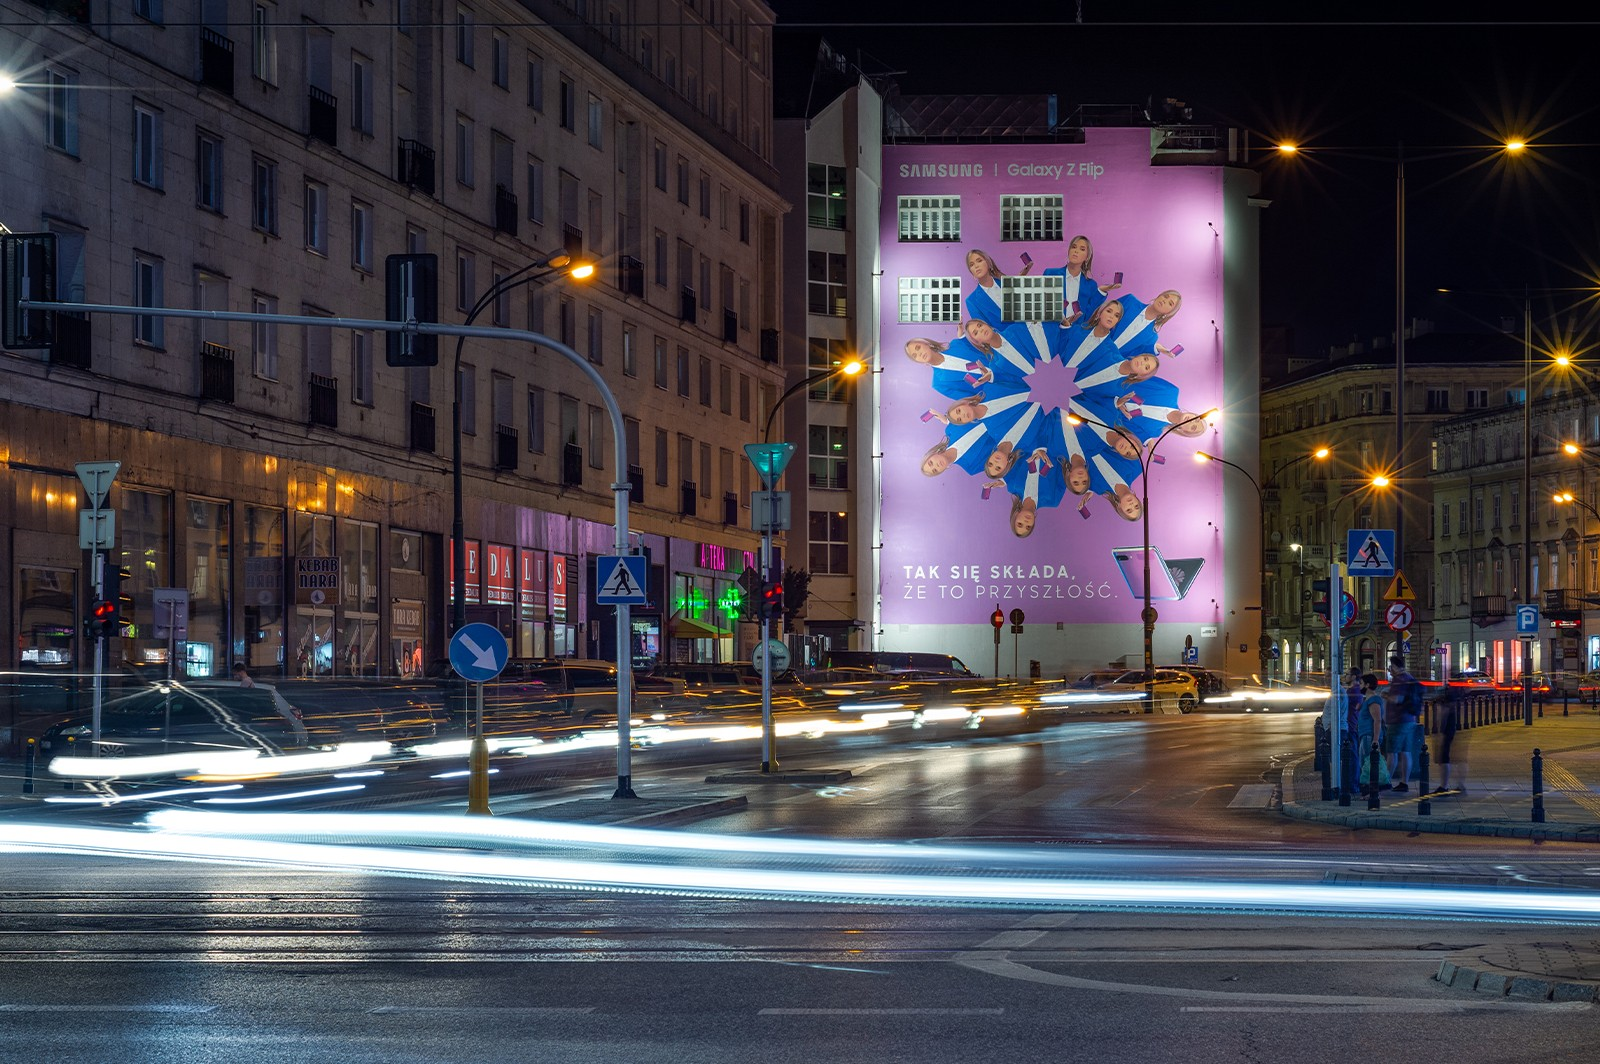 Advertising mural for Samsung Polska on Bracka street in Warsaw | Samsung Galaxy Z Flip | Portfolio